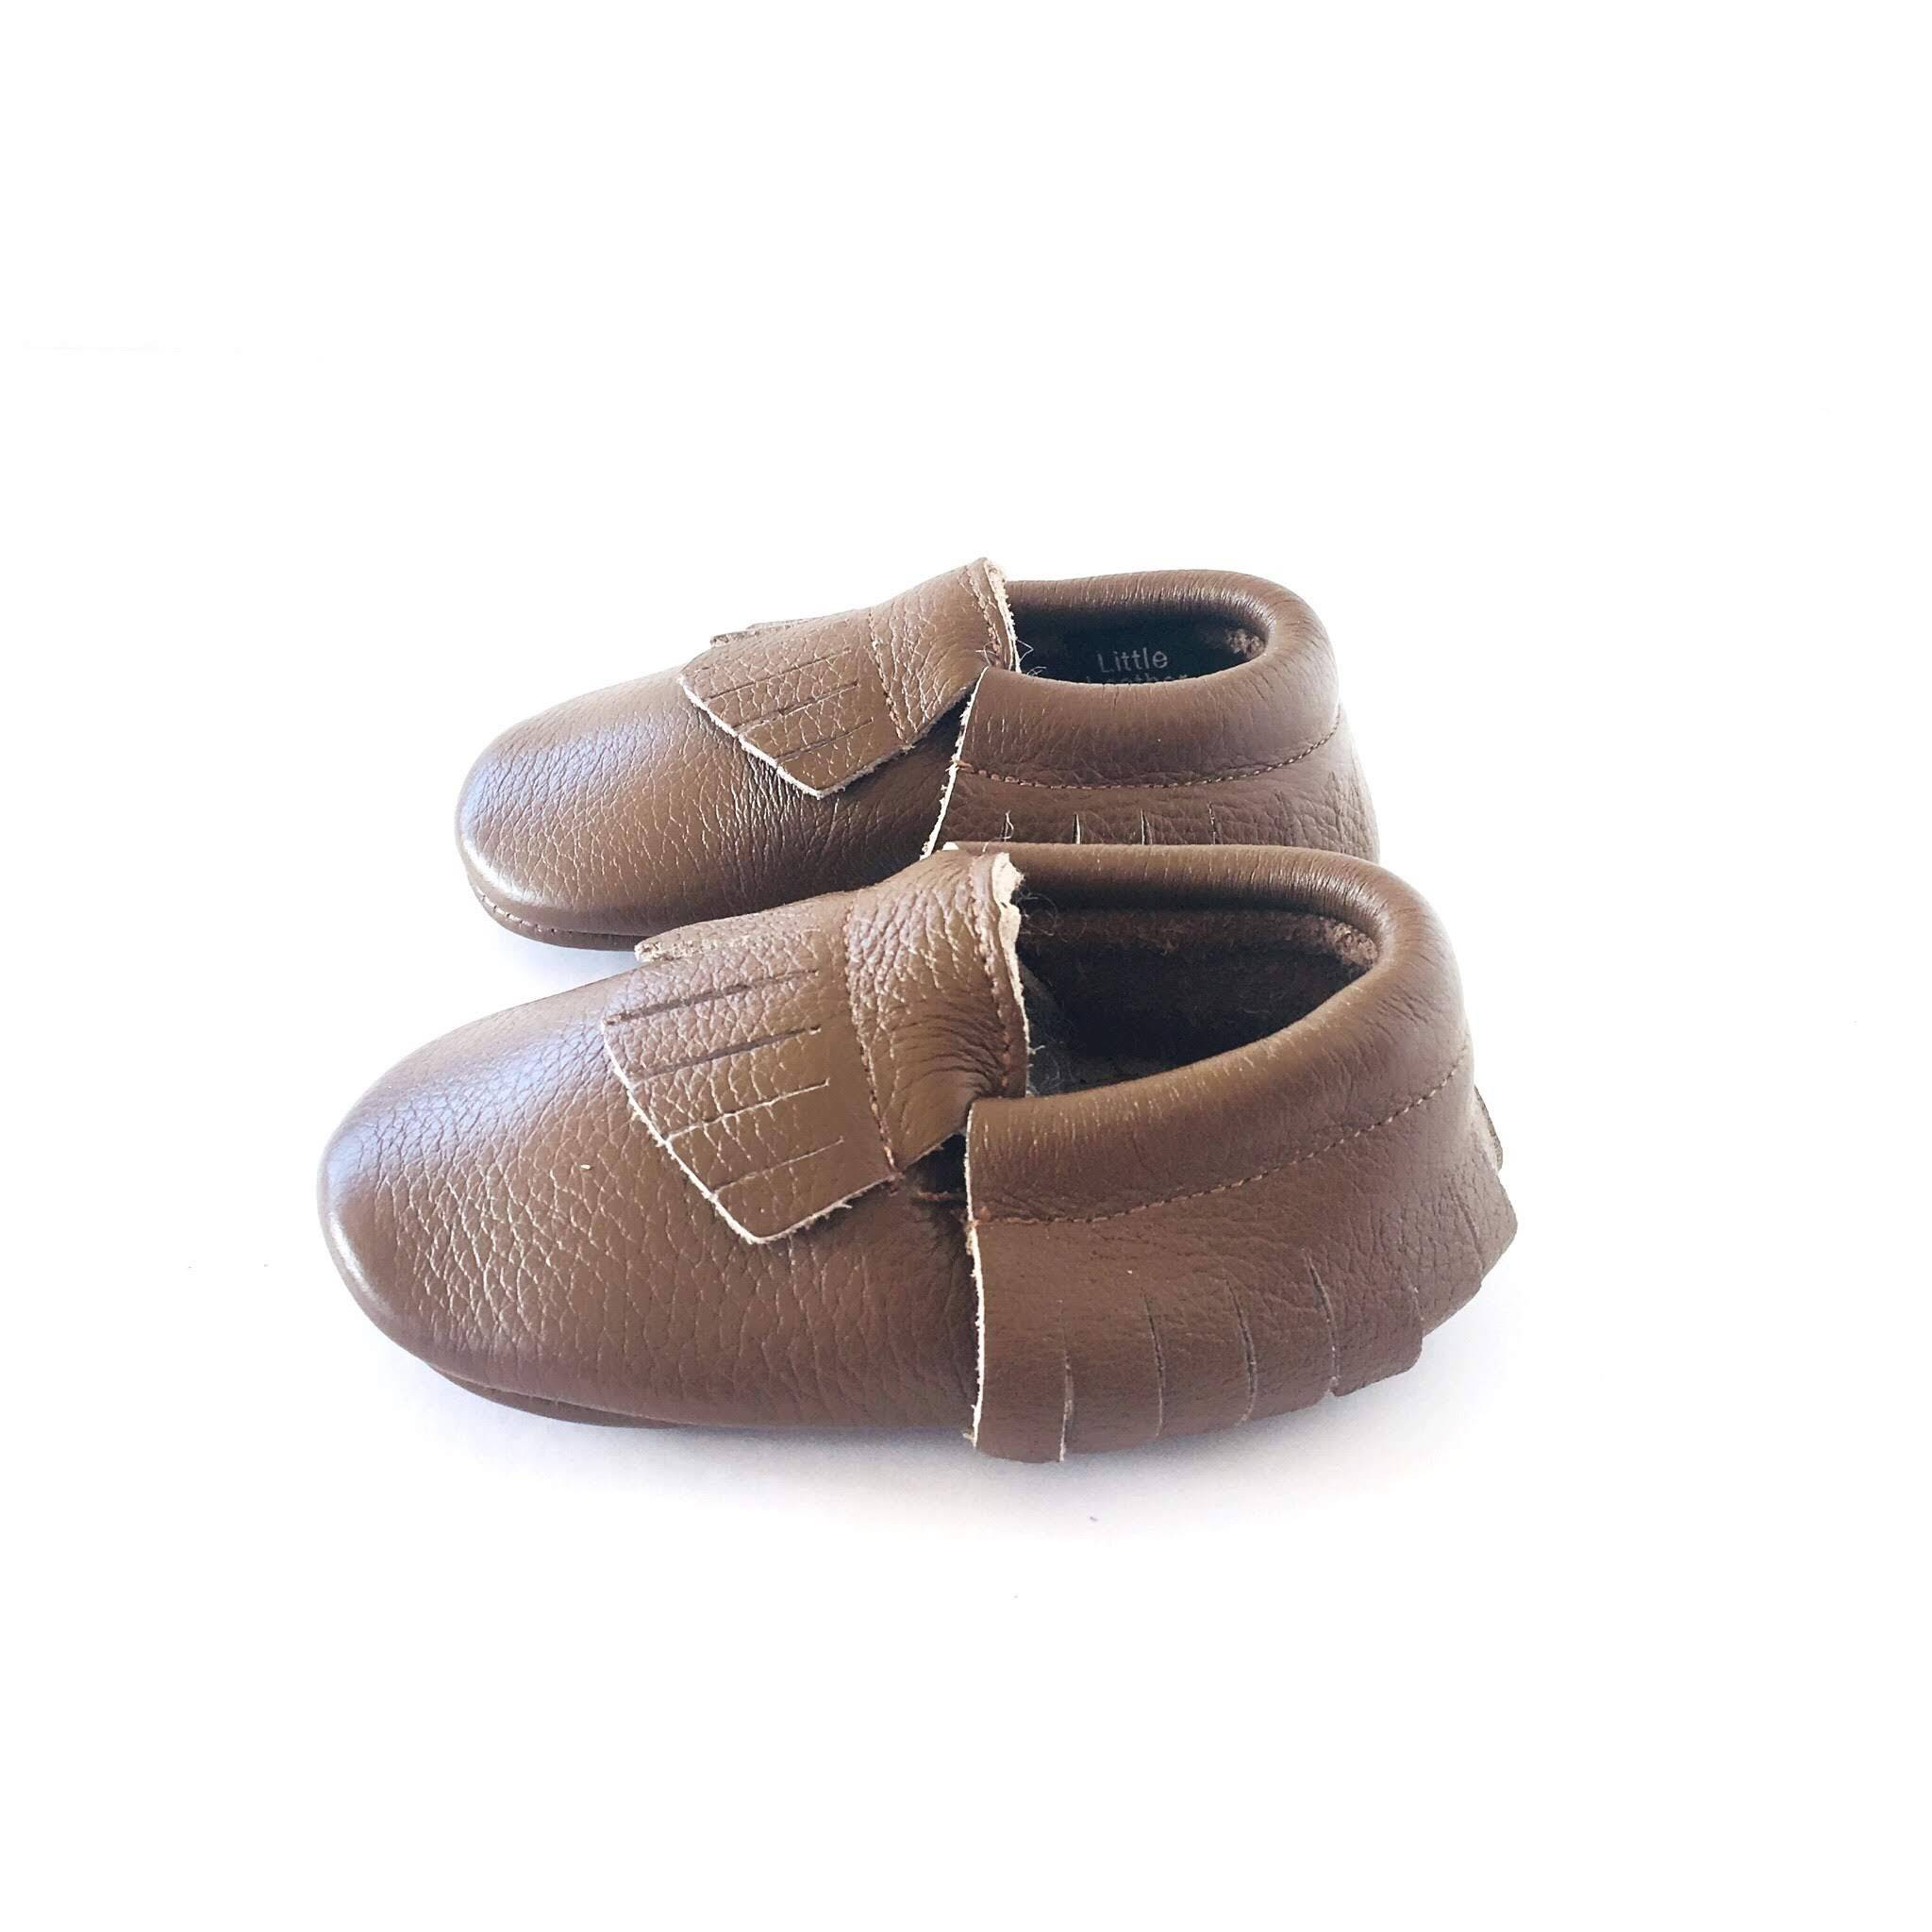 Chocolate Brown colour soft sole shoes with fringe